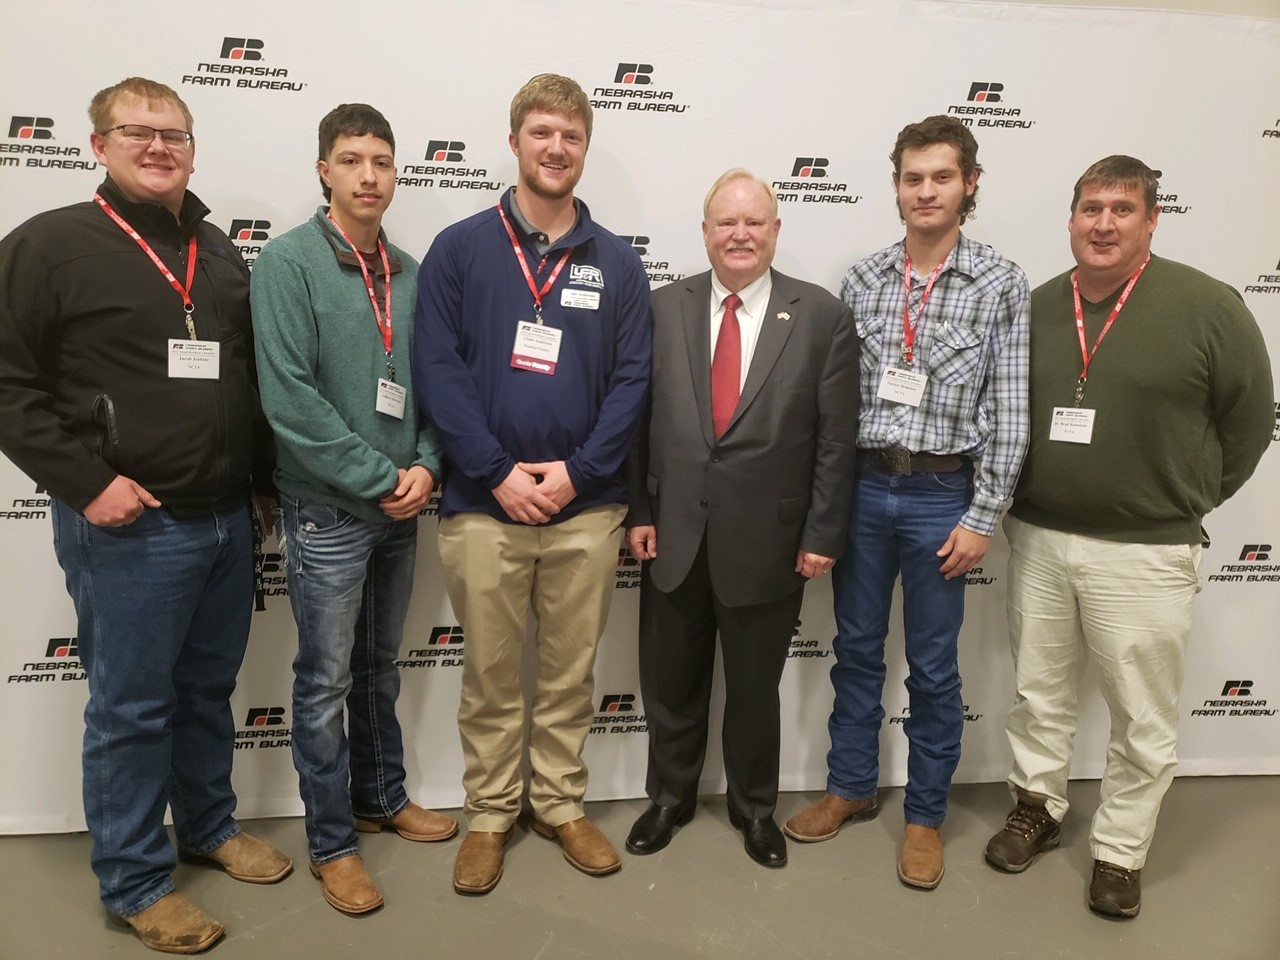 NCTA Aggie students met Farm Bureau president Steve Nelson of Axtell (third from right) on Monday. Attendees from NCTA were, from left, Jacob Jenkins, Gilberto Herrera, Clade Anderson, Tucker Hodsden and Dr. Brad Ramsdale. (Farm Bureau photo)